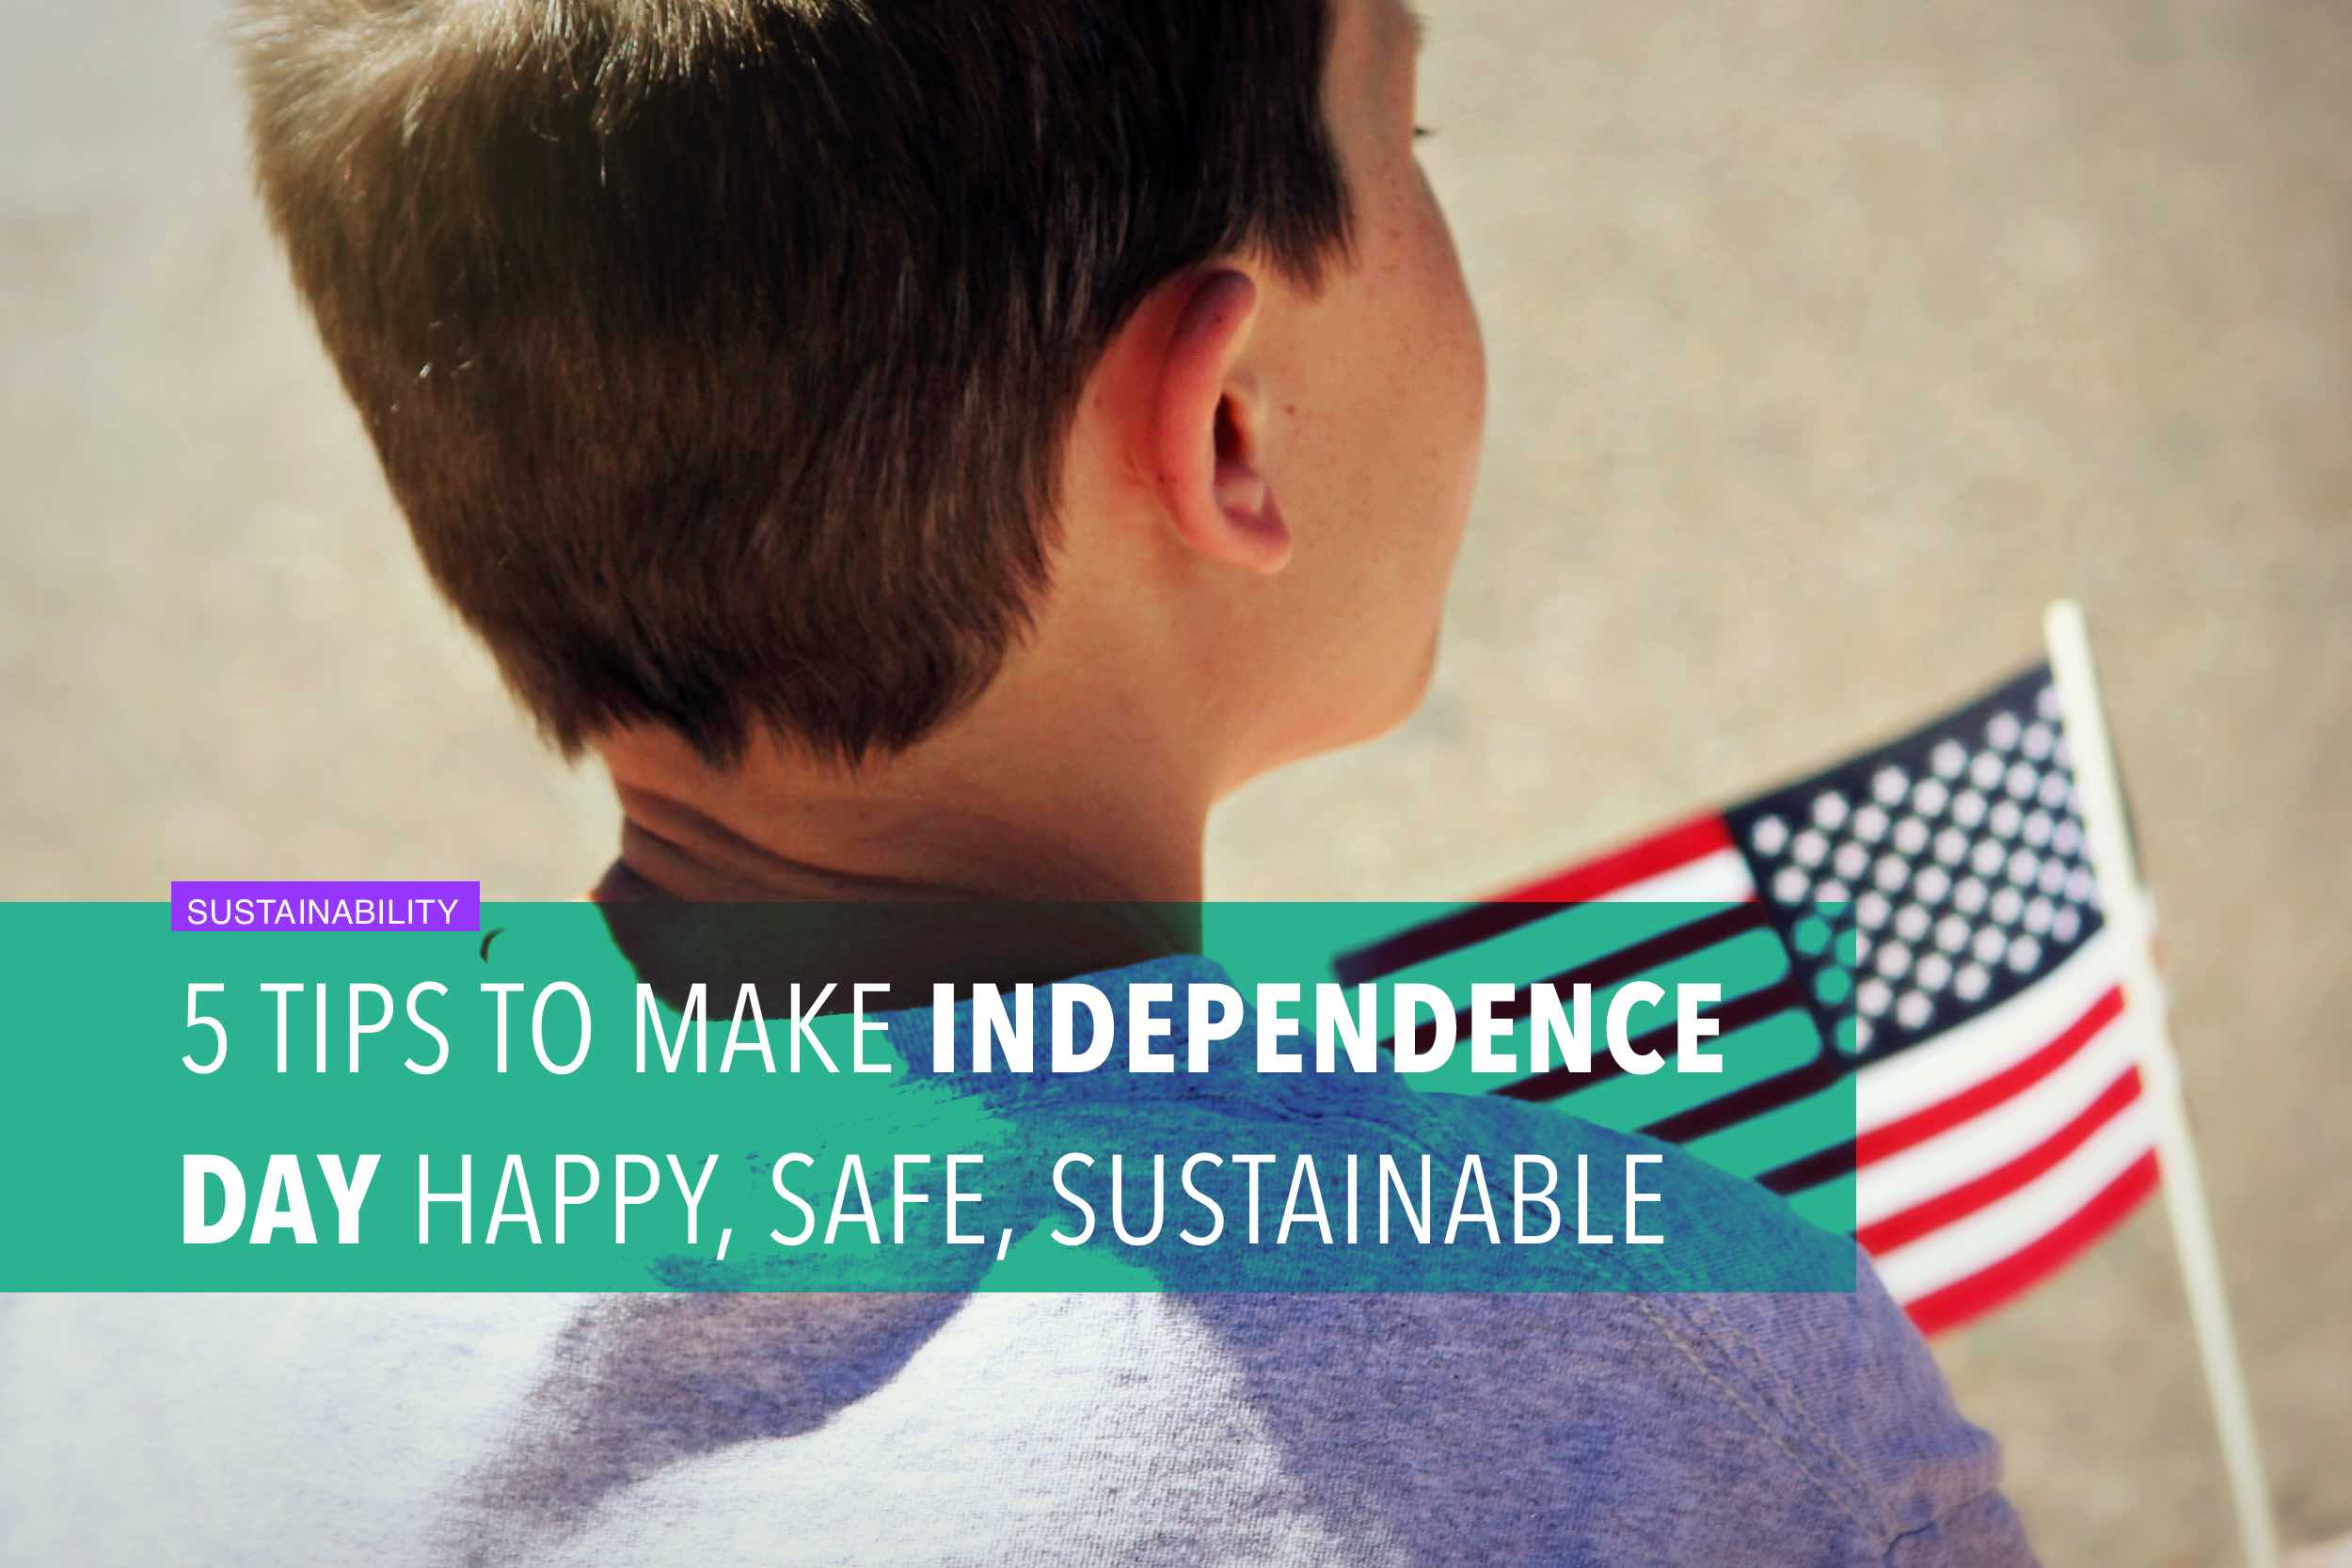 5 tips to make Independence Day happy, safe, sustainable